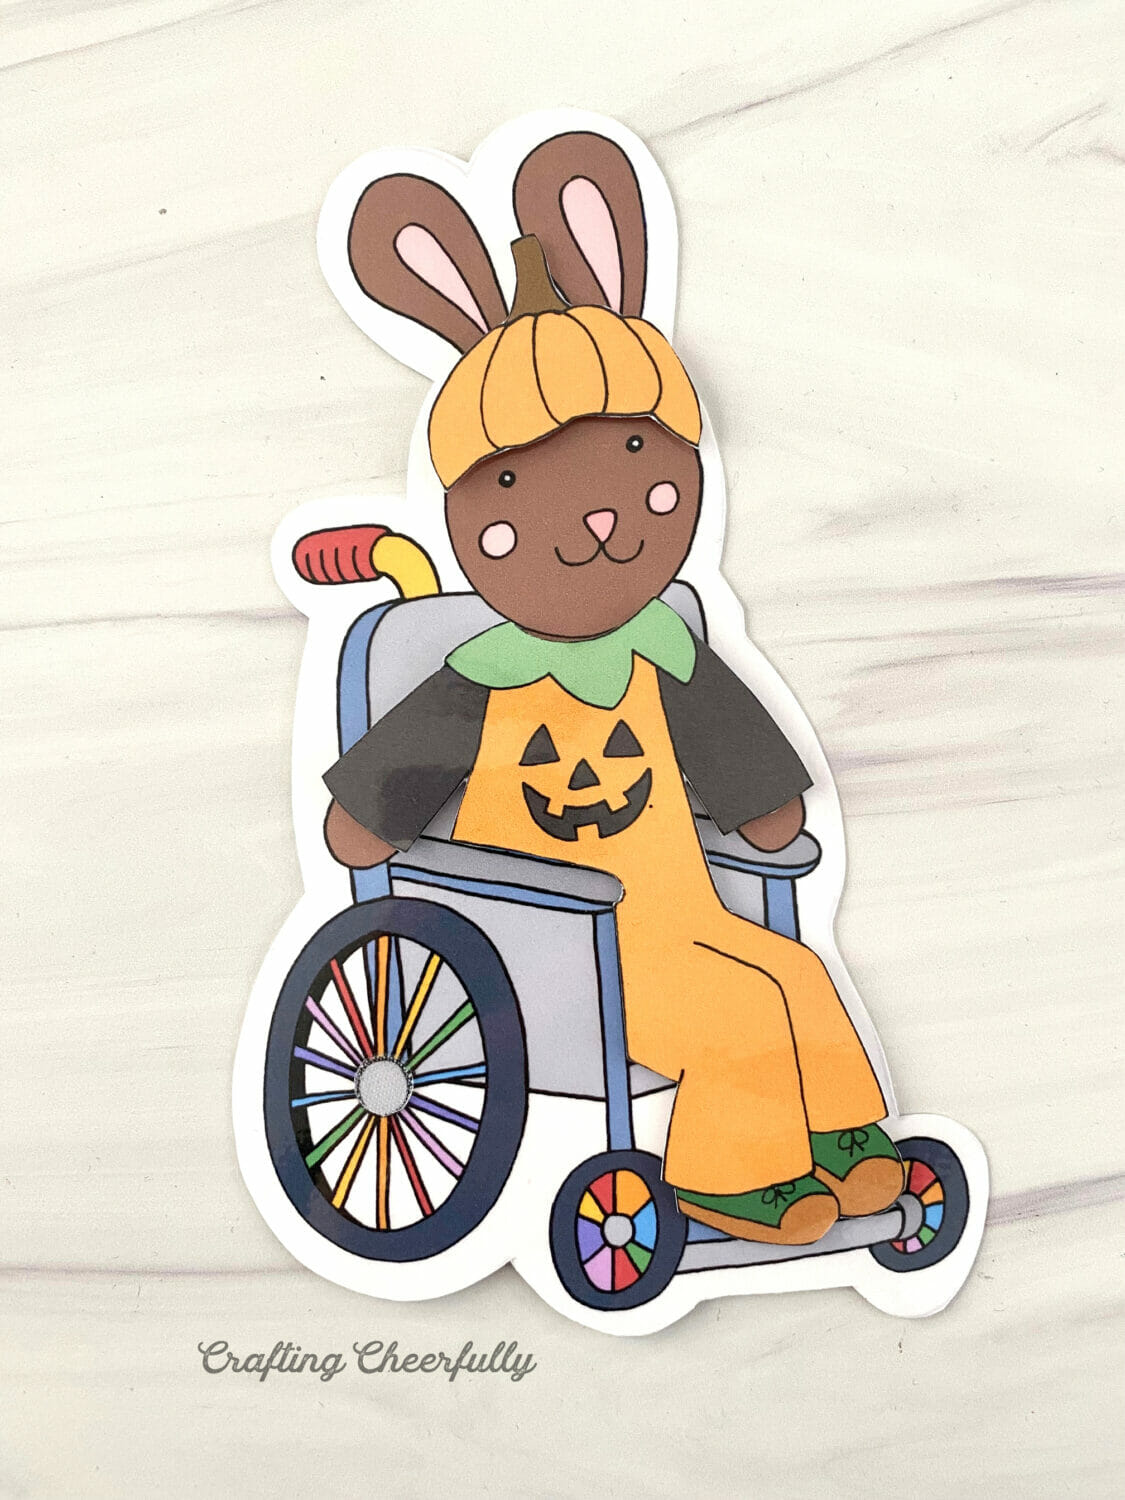 A paper doll bunny using a wheelchair is dressed in a pumpkin costume for Halloween.